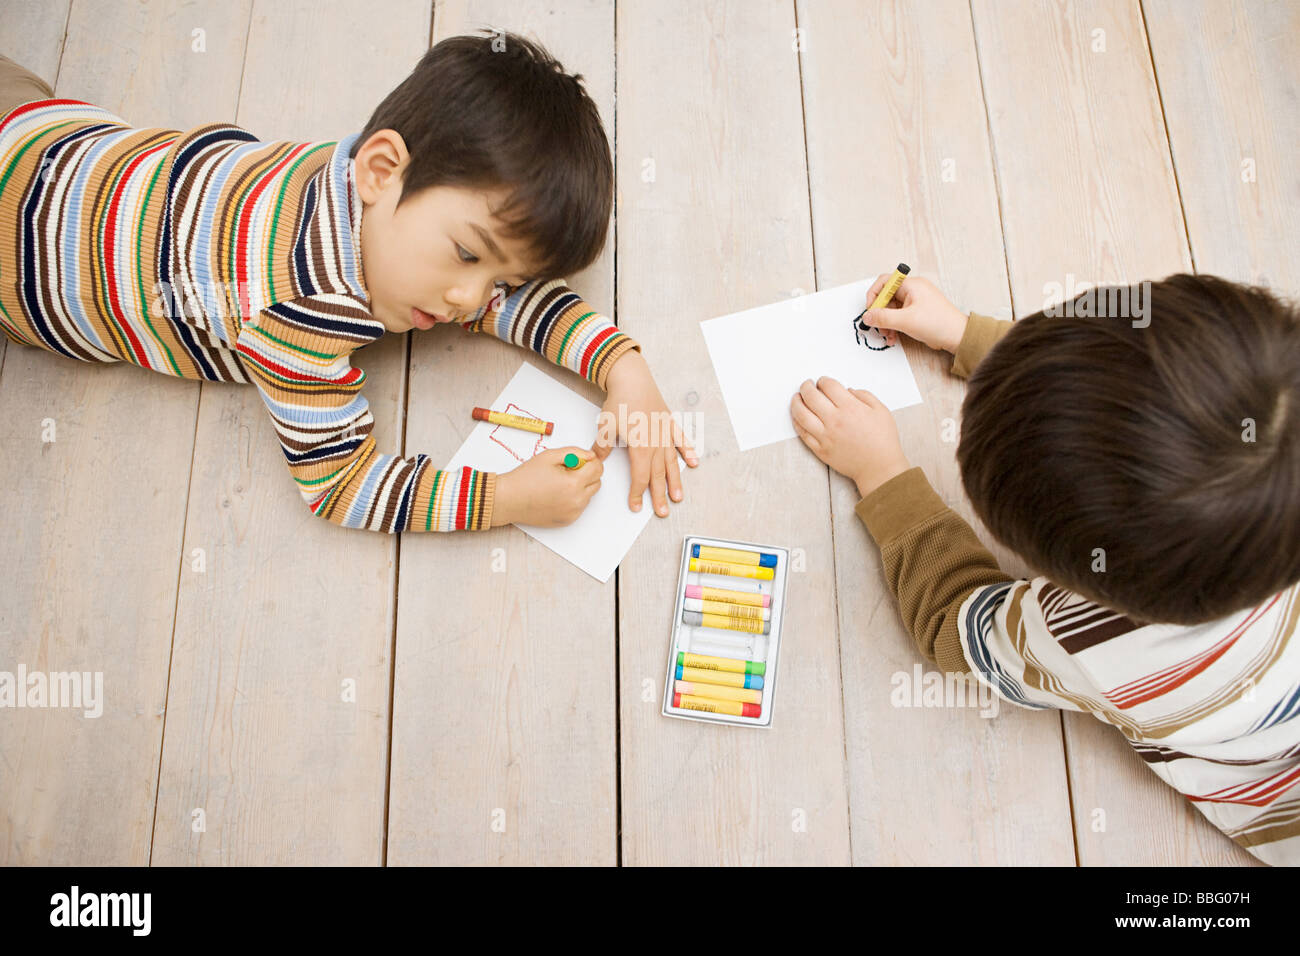 Boys drawing with crayons - Stock Image